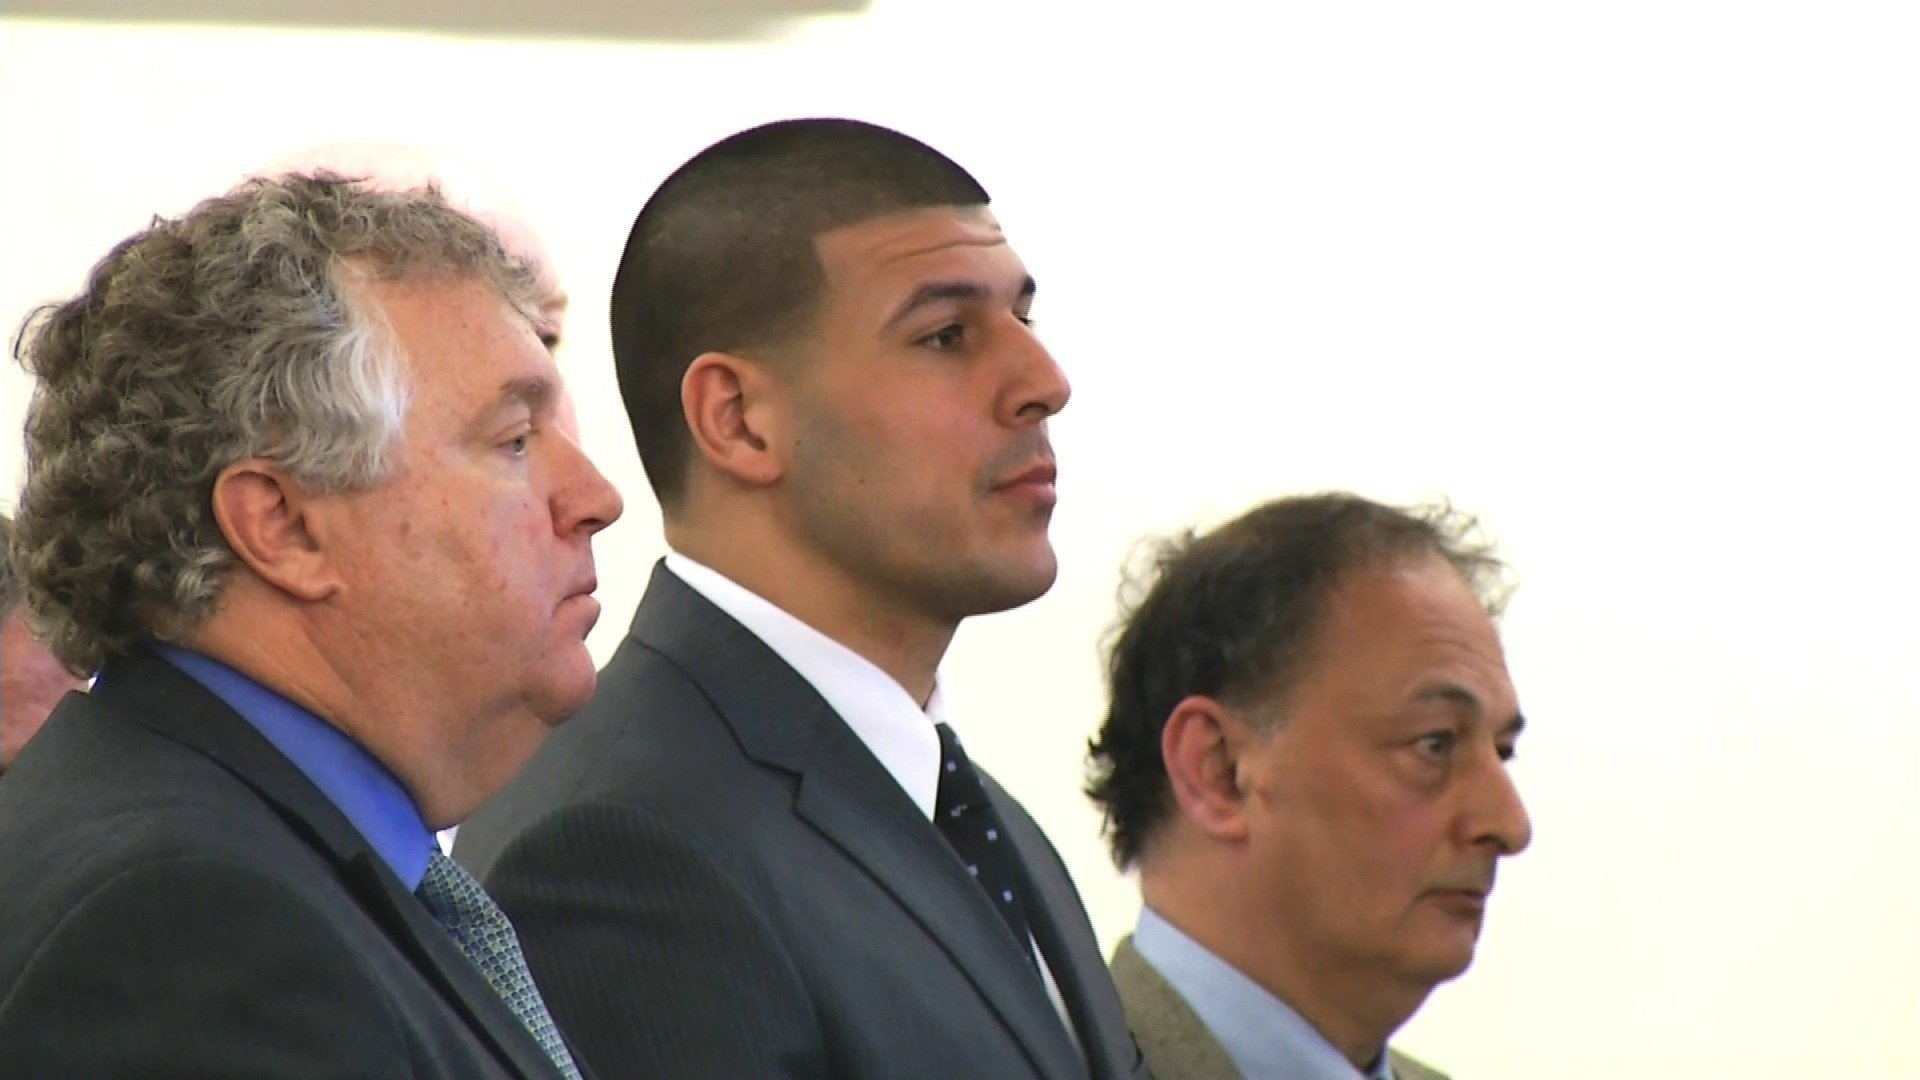 Prison: Aaron Hernandez elated about acquittal, not suicidal